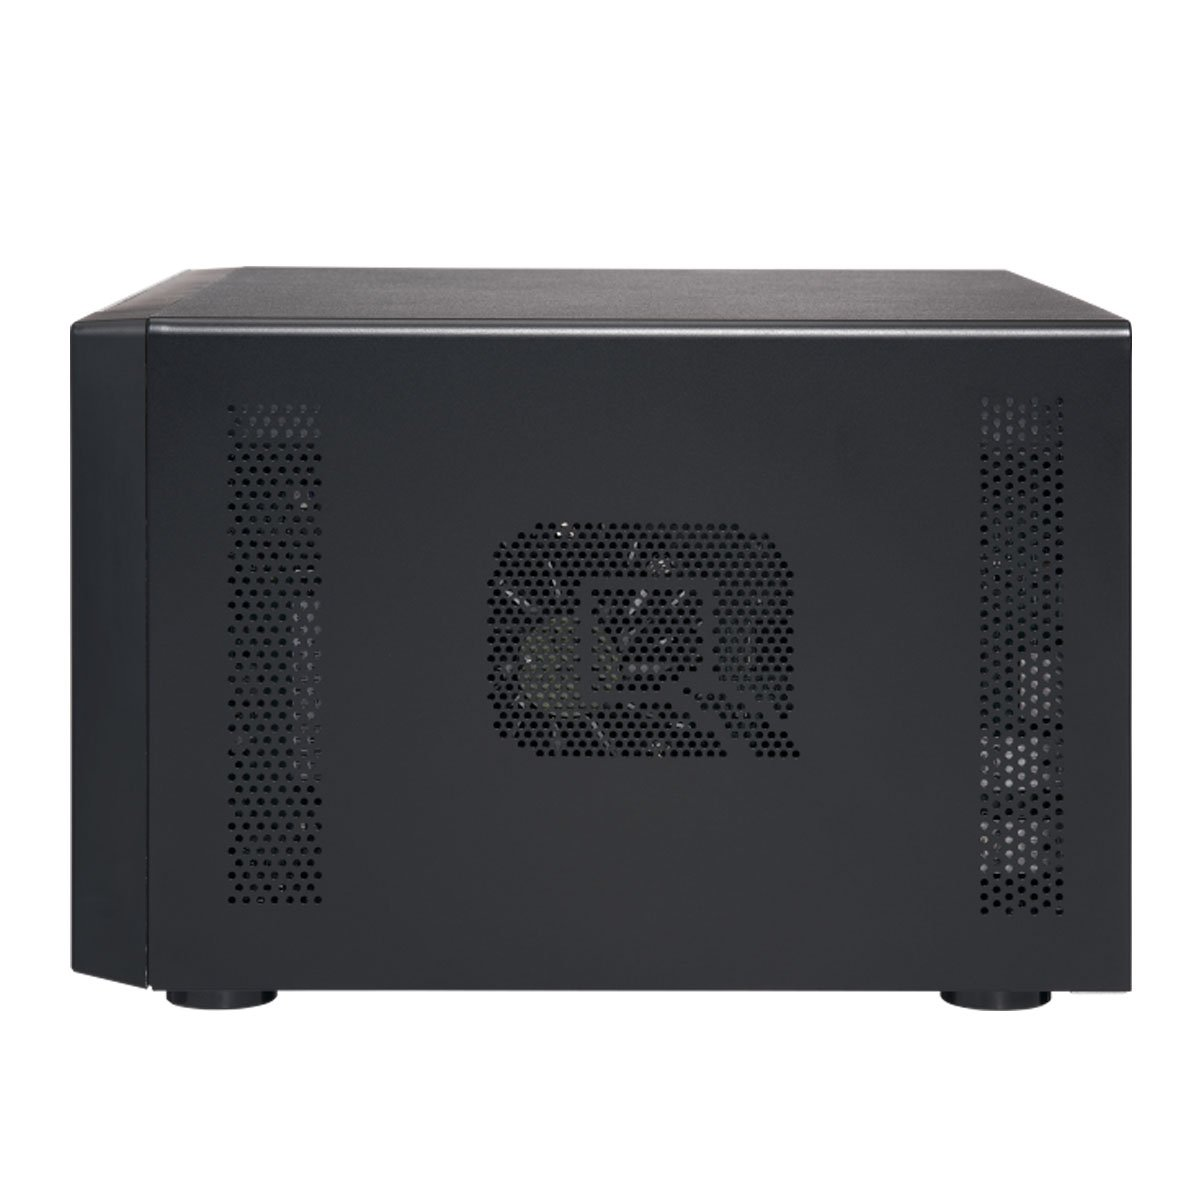 QNAP TS-832X-8G-US High-Performance 8-Bay 64-bit NAS with Built-in 2 x 10GbE (SFP+) Network, Hardware Encryption, Quad Core 1.7GHz, 8GB RAM, 2 x 1GbE by QNAP (Image #3)